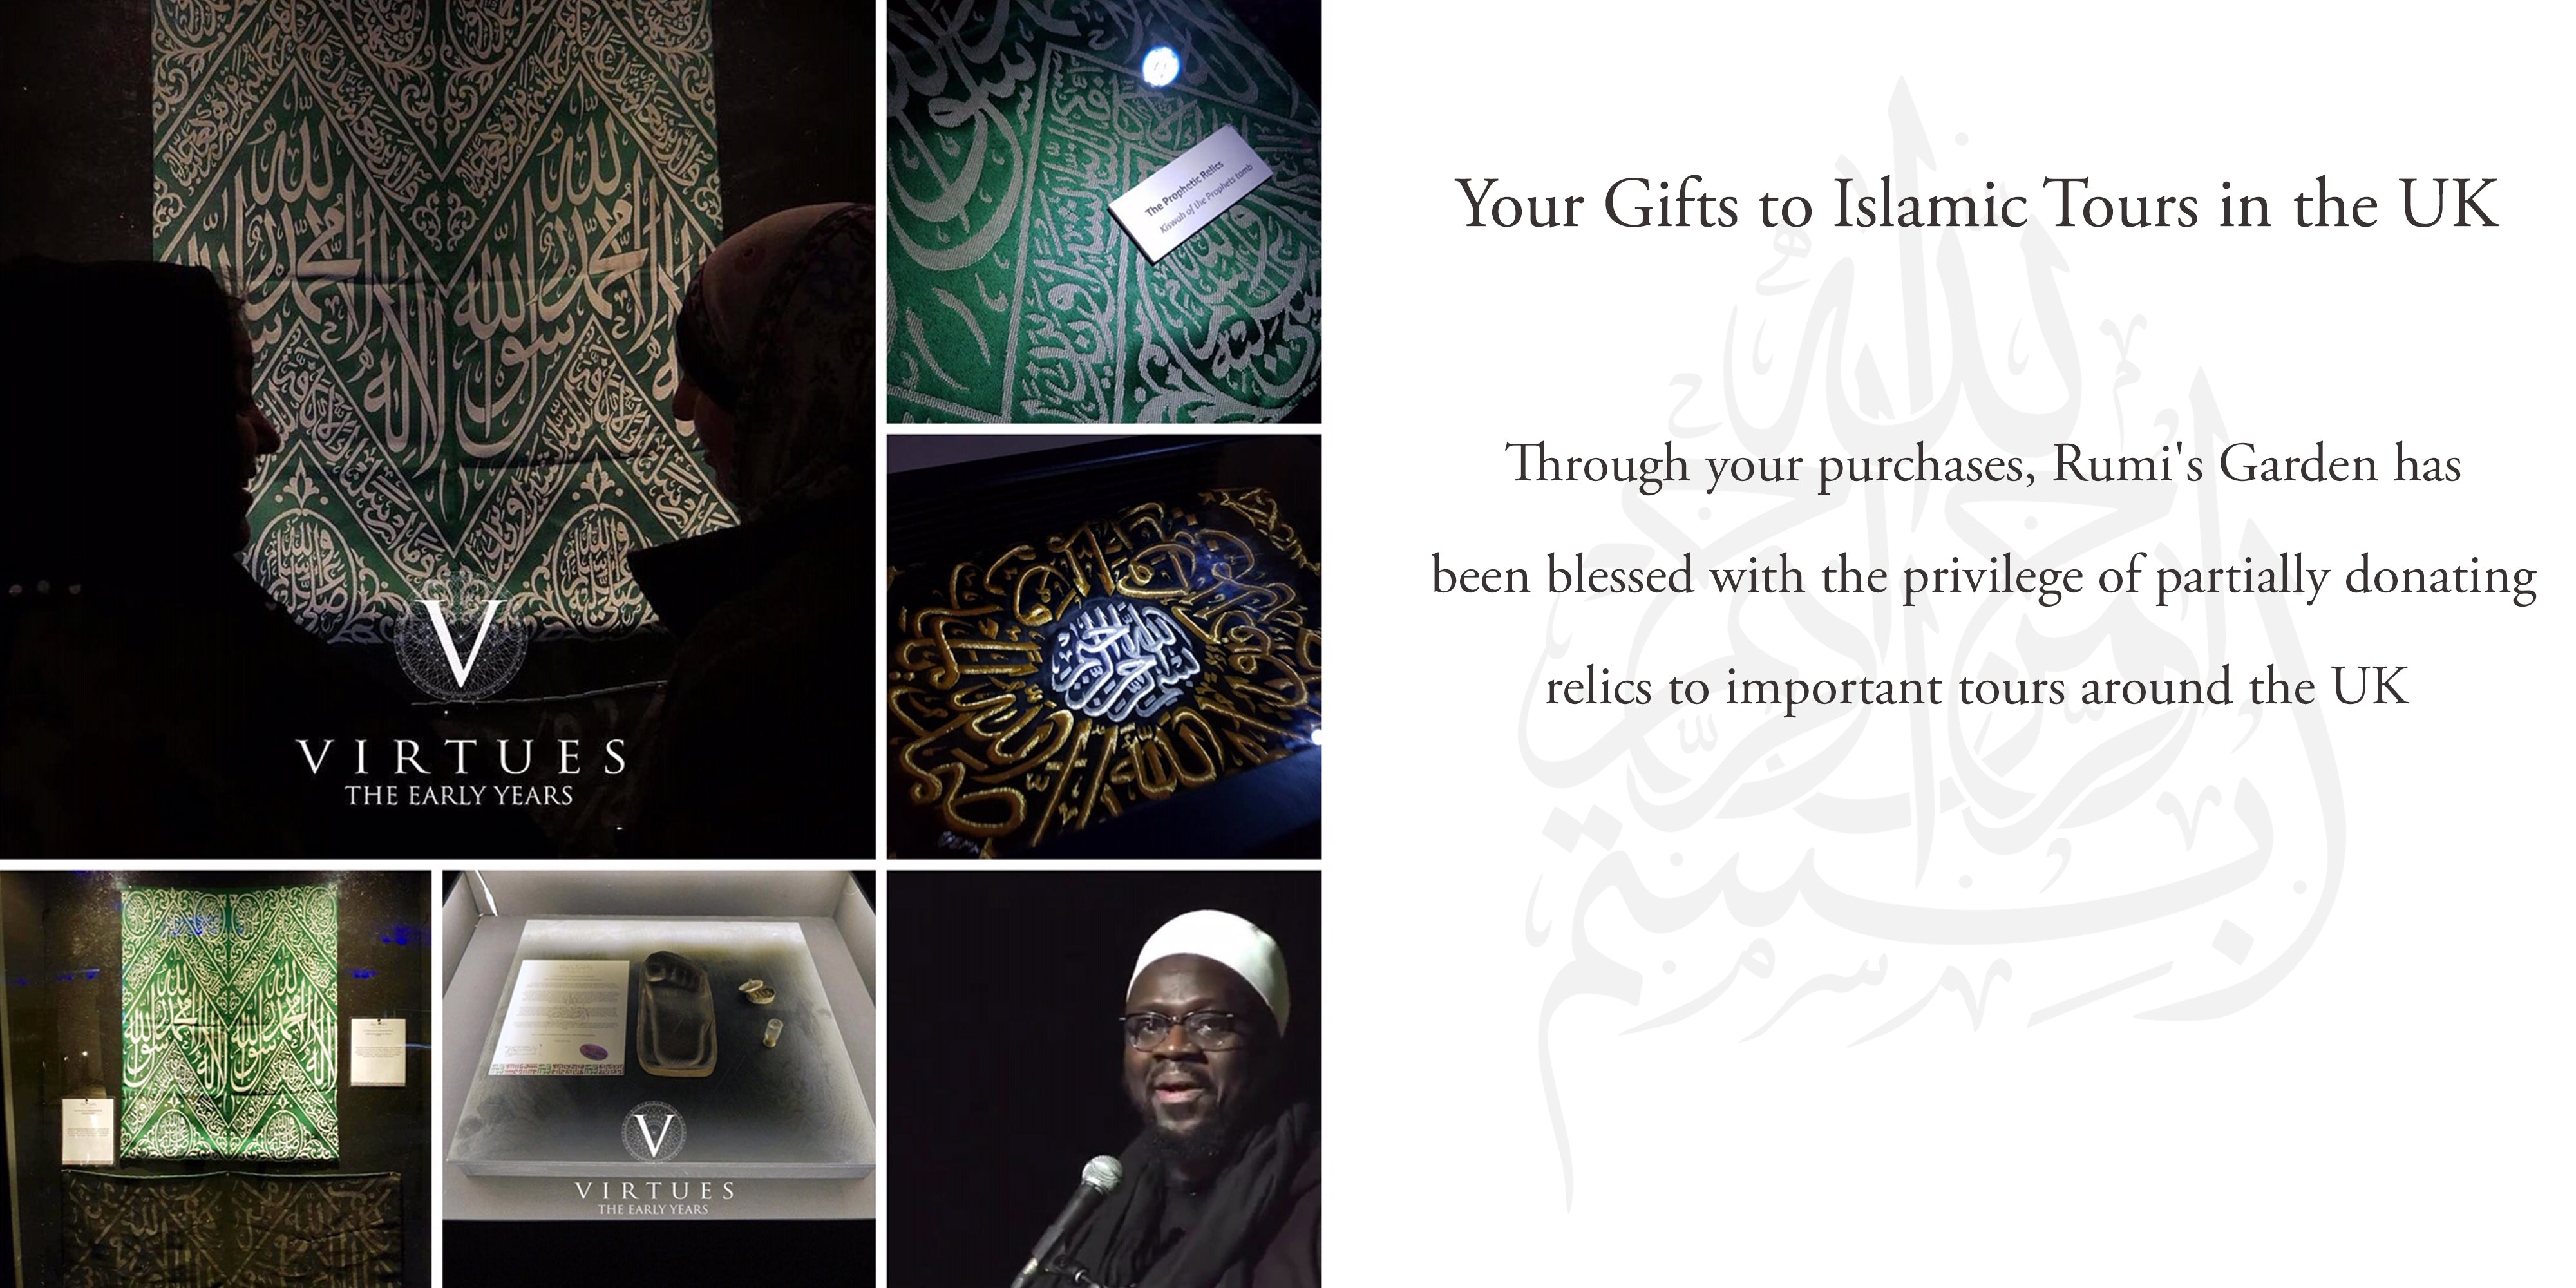 Your Gifts to Islamic Tours in the UK